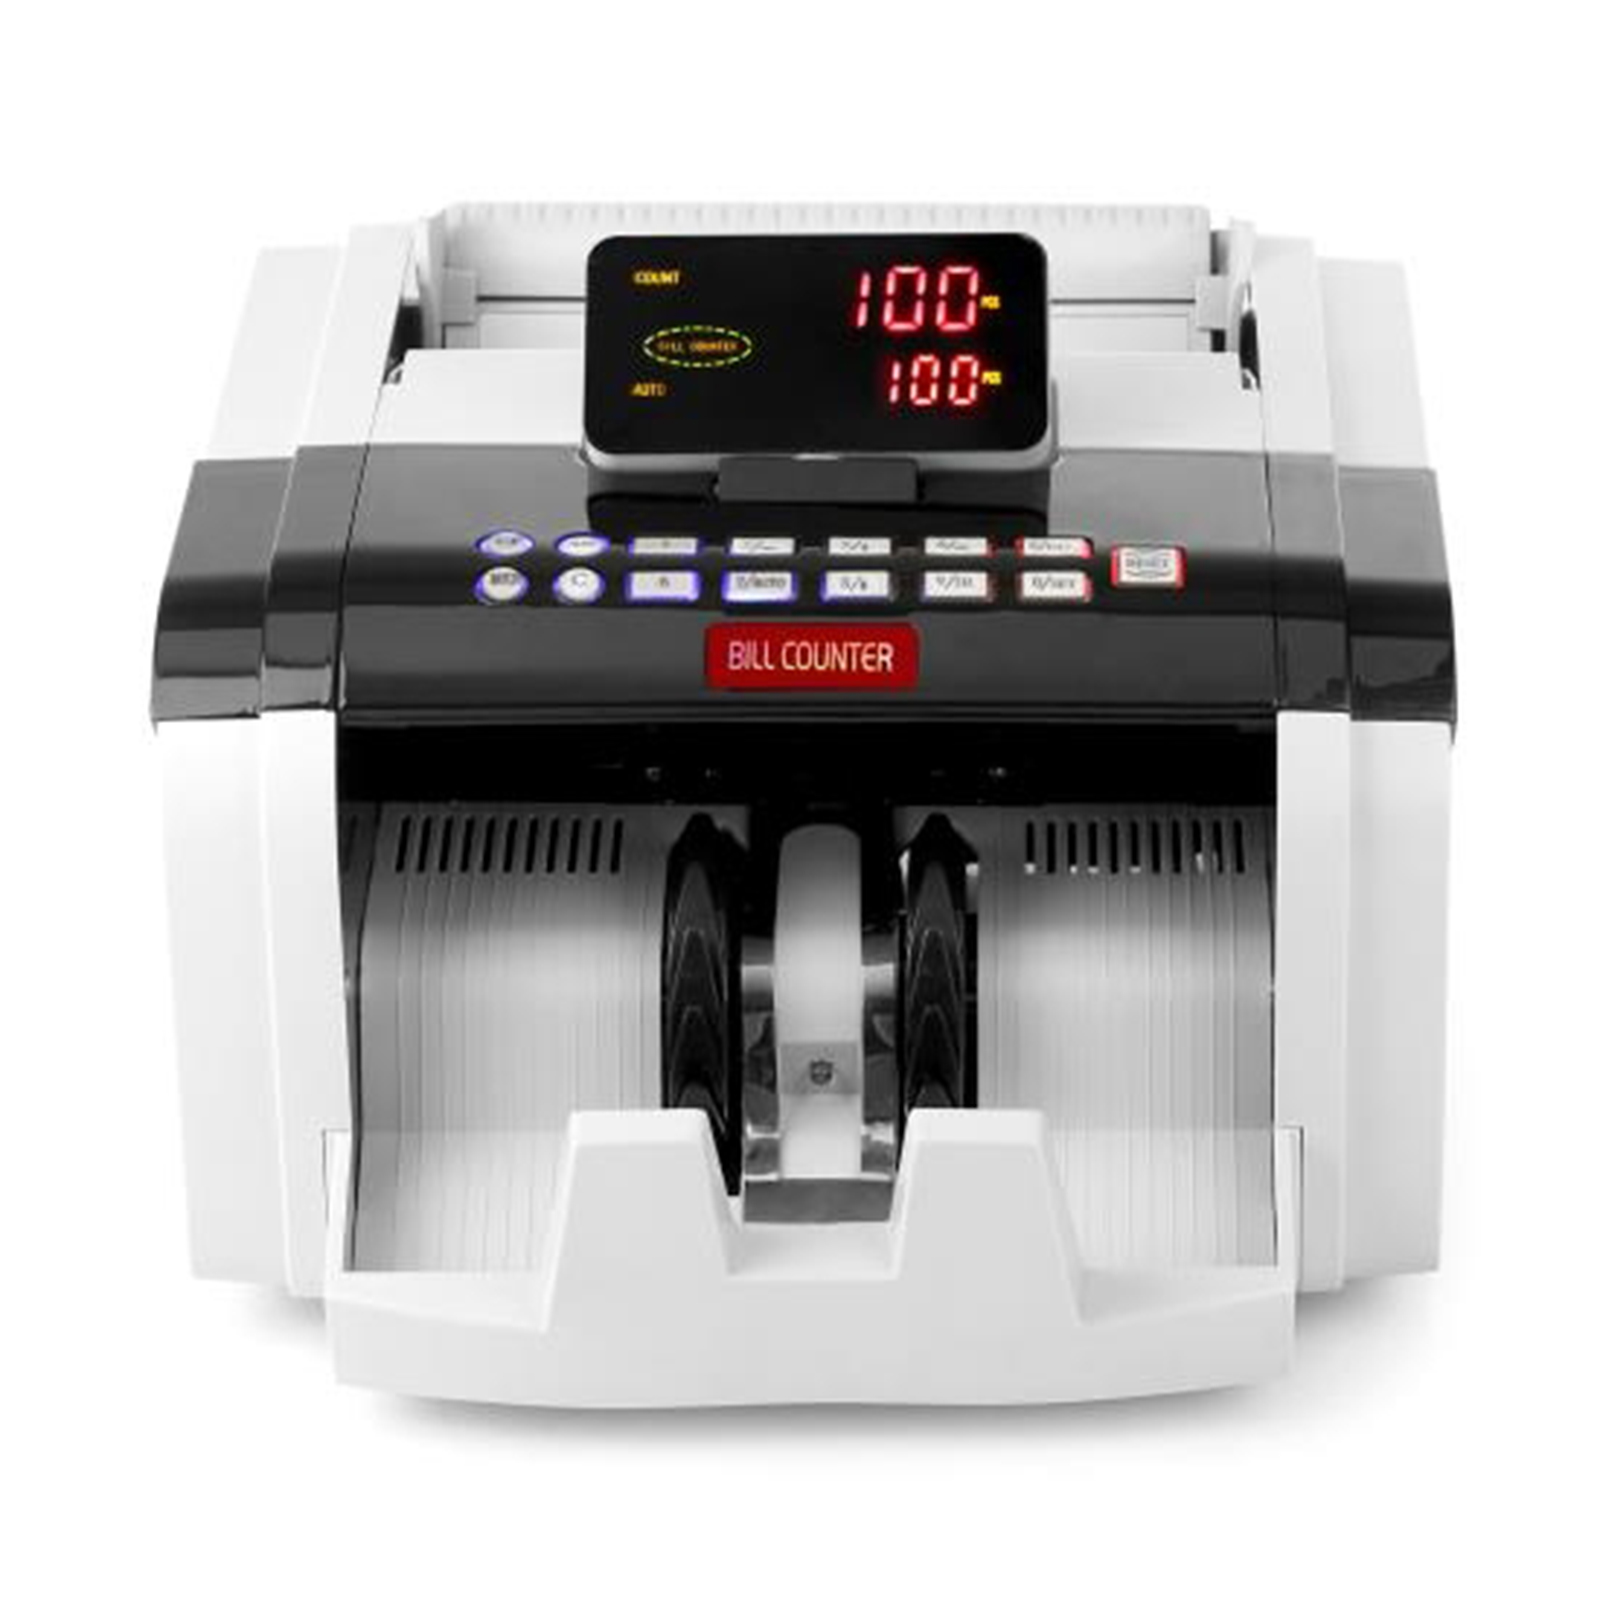 Automatic Bill Counter, Cash Money Banknote Counting Machine